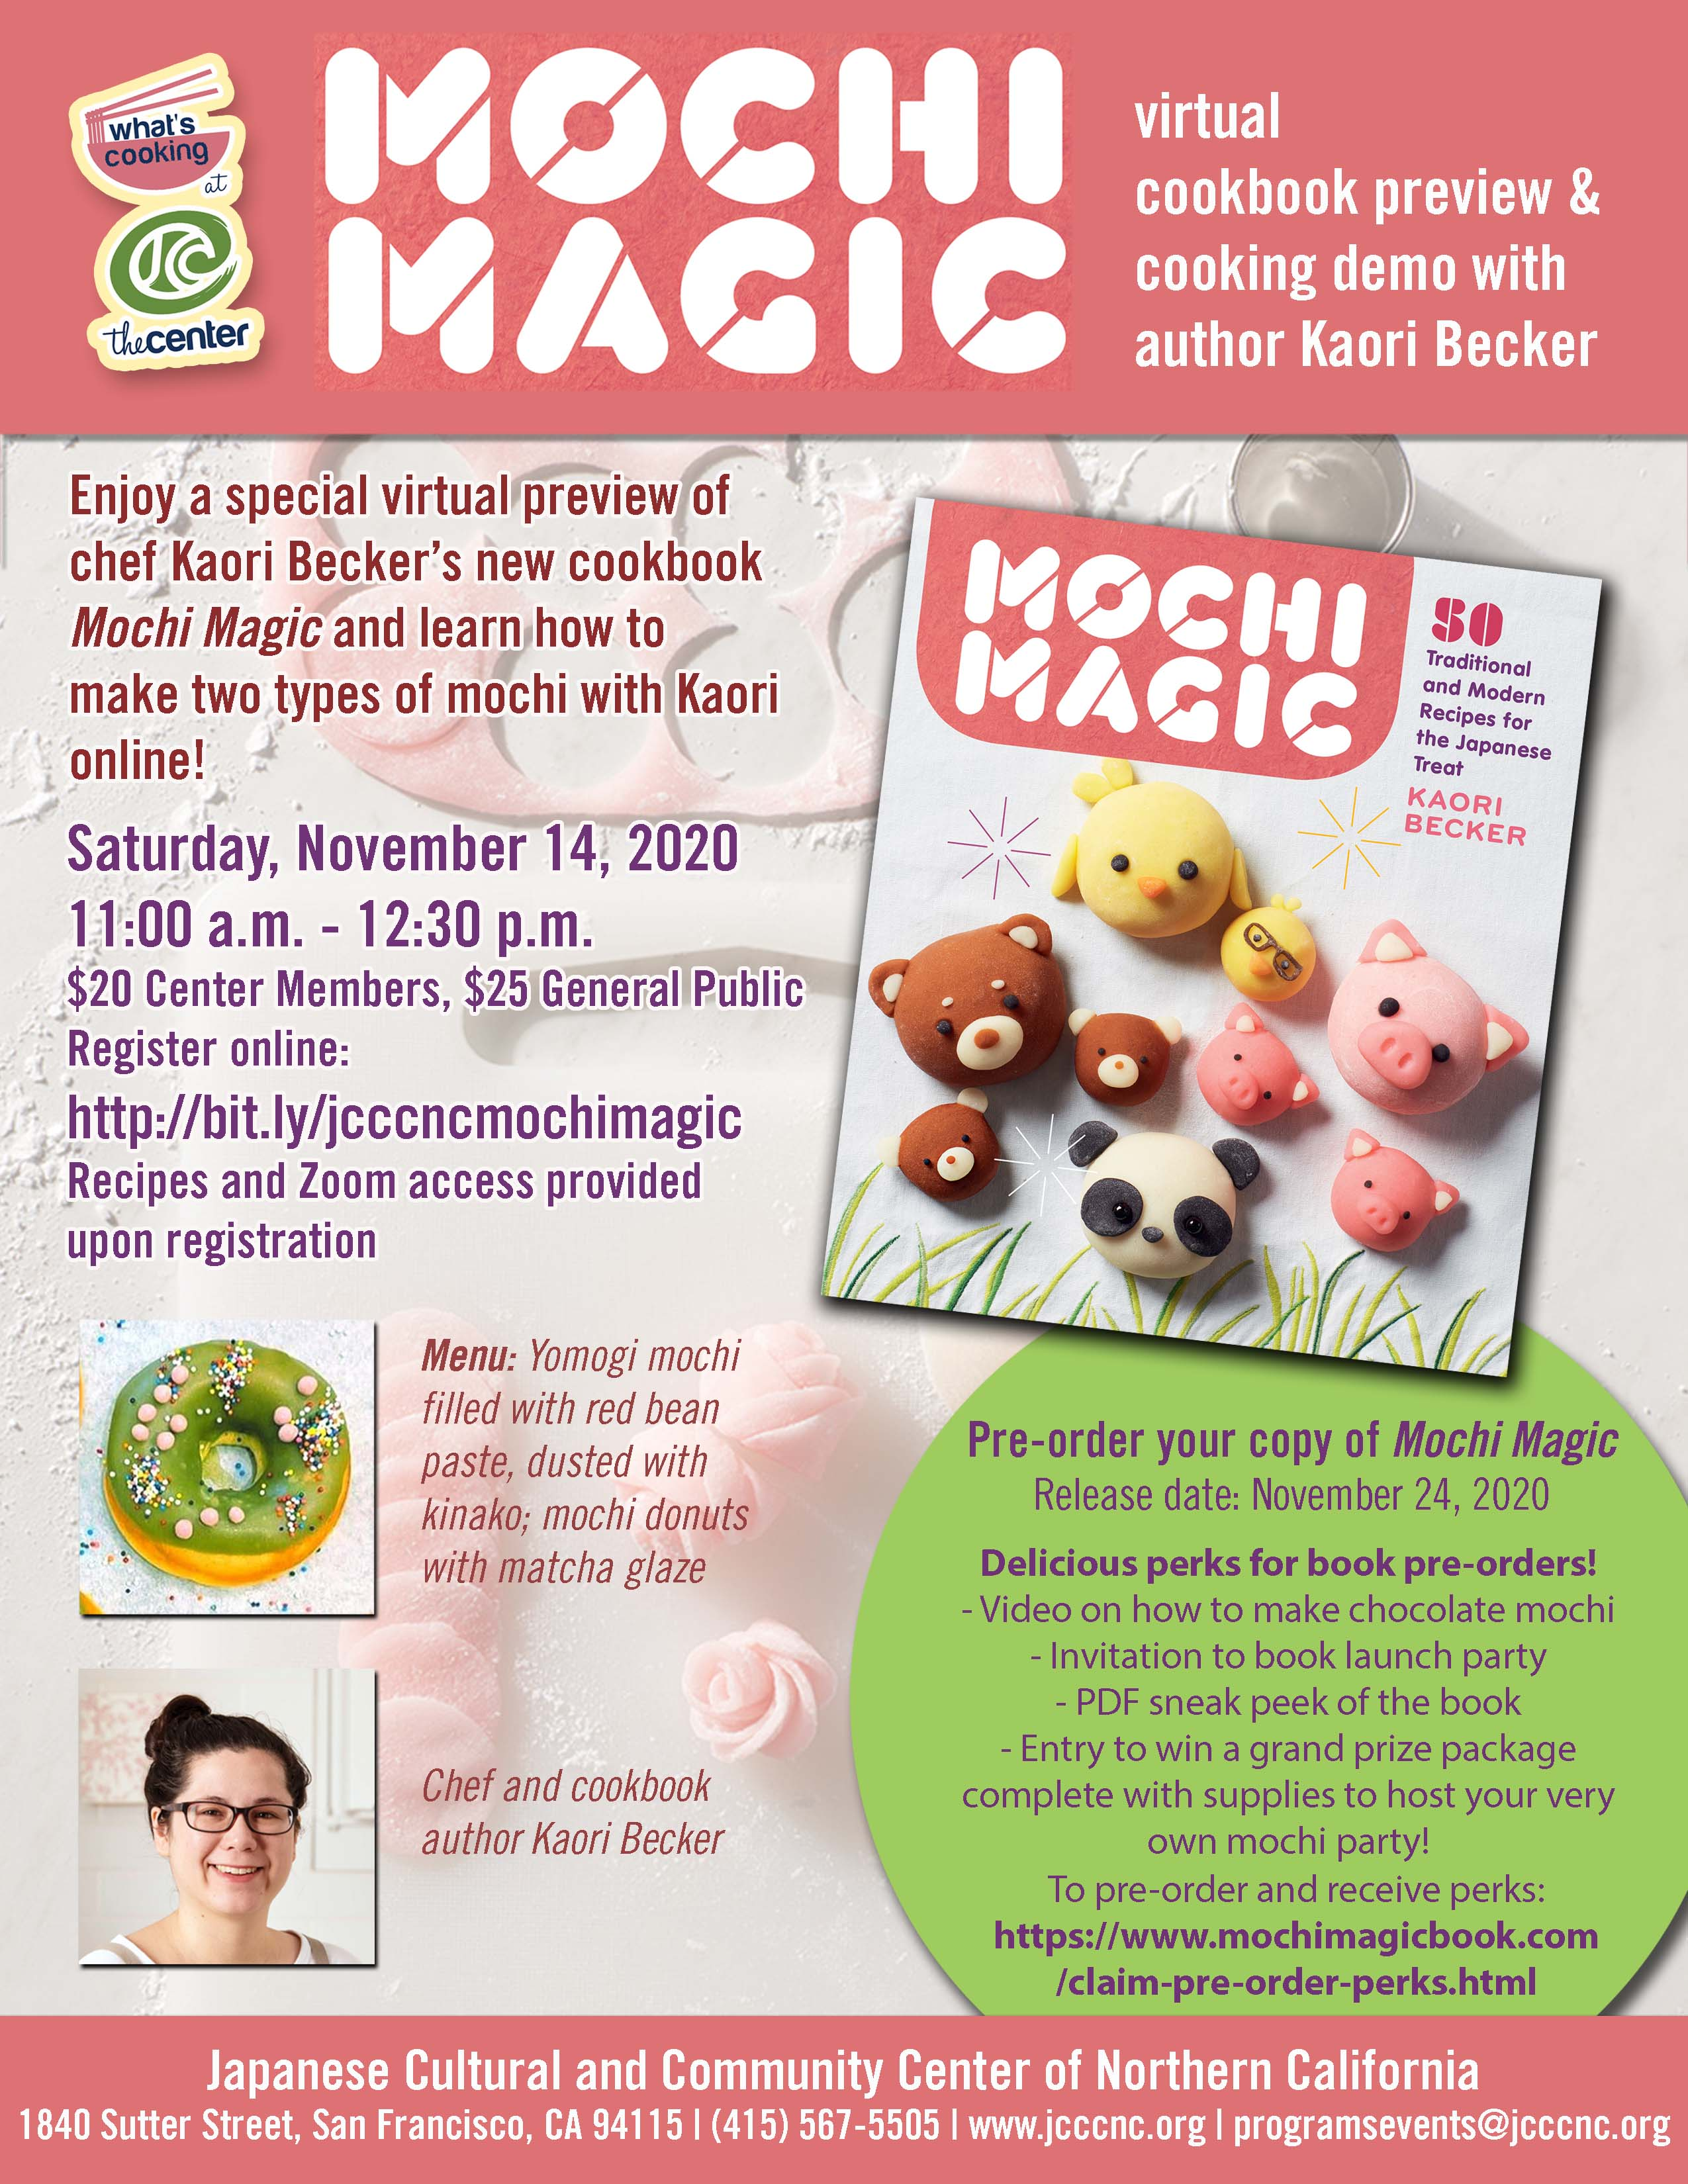 Mochi Magic with Kaori Becker: Cookbook Preview and Cooking Demo